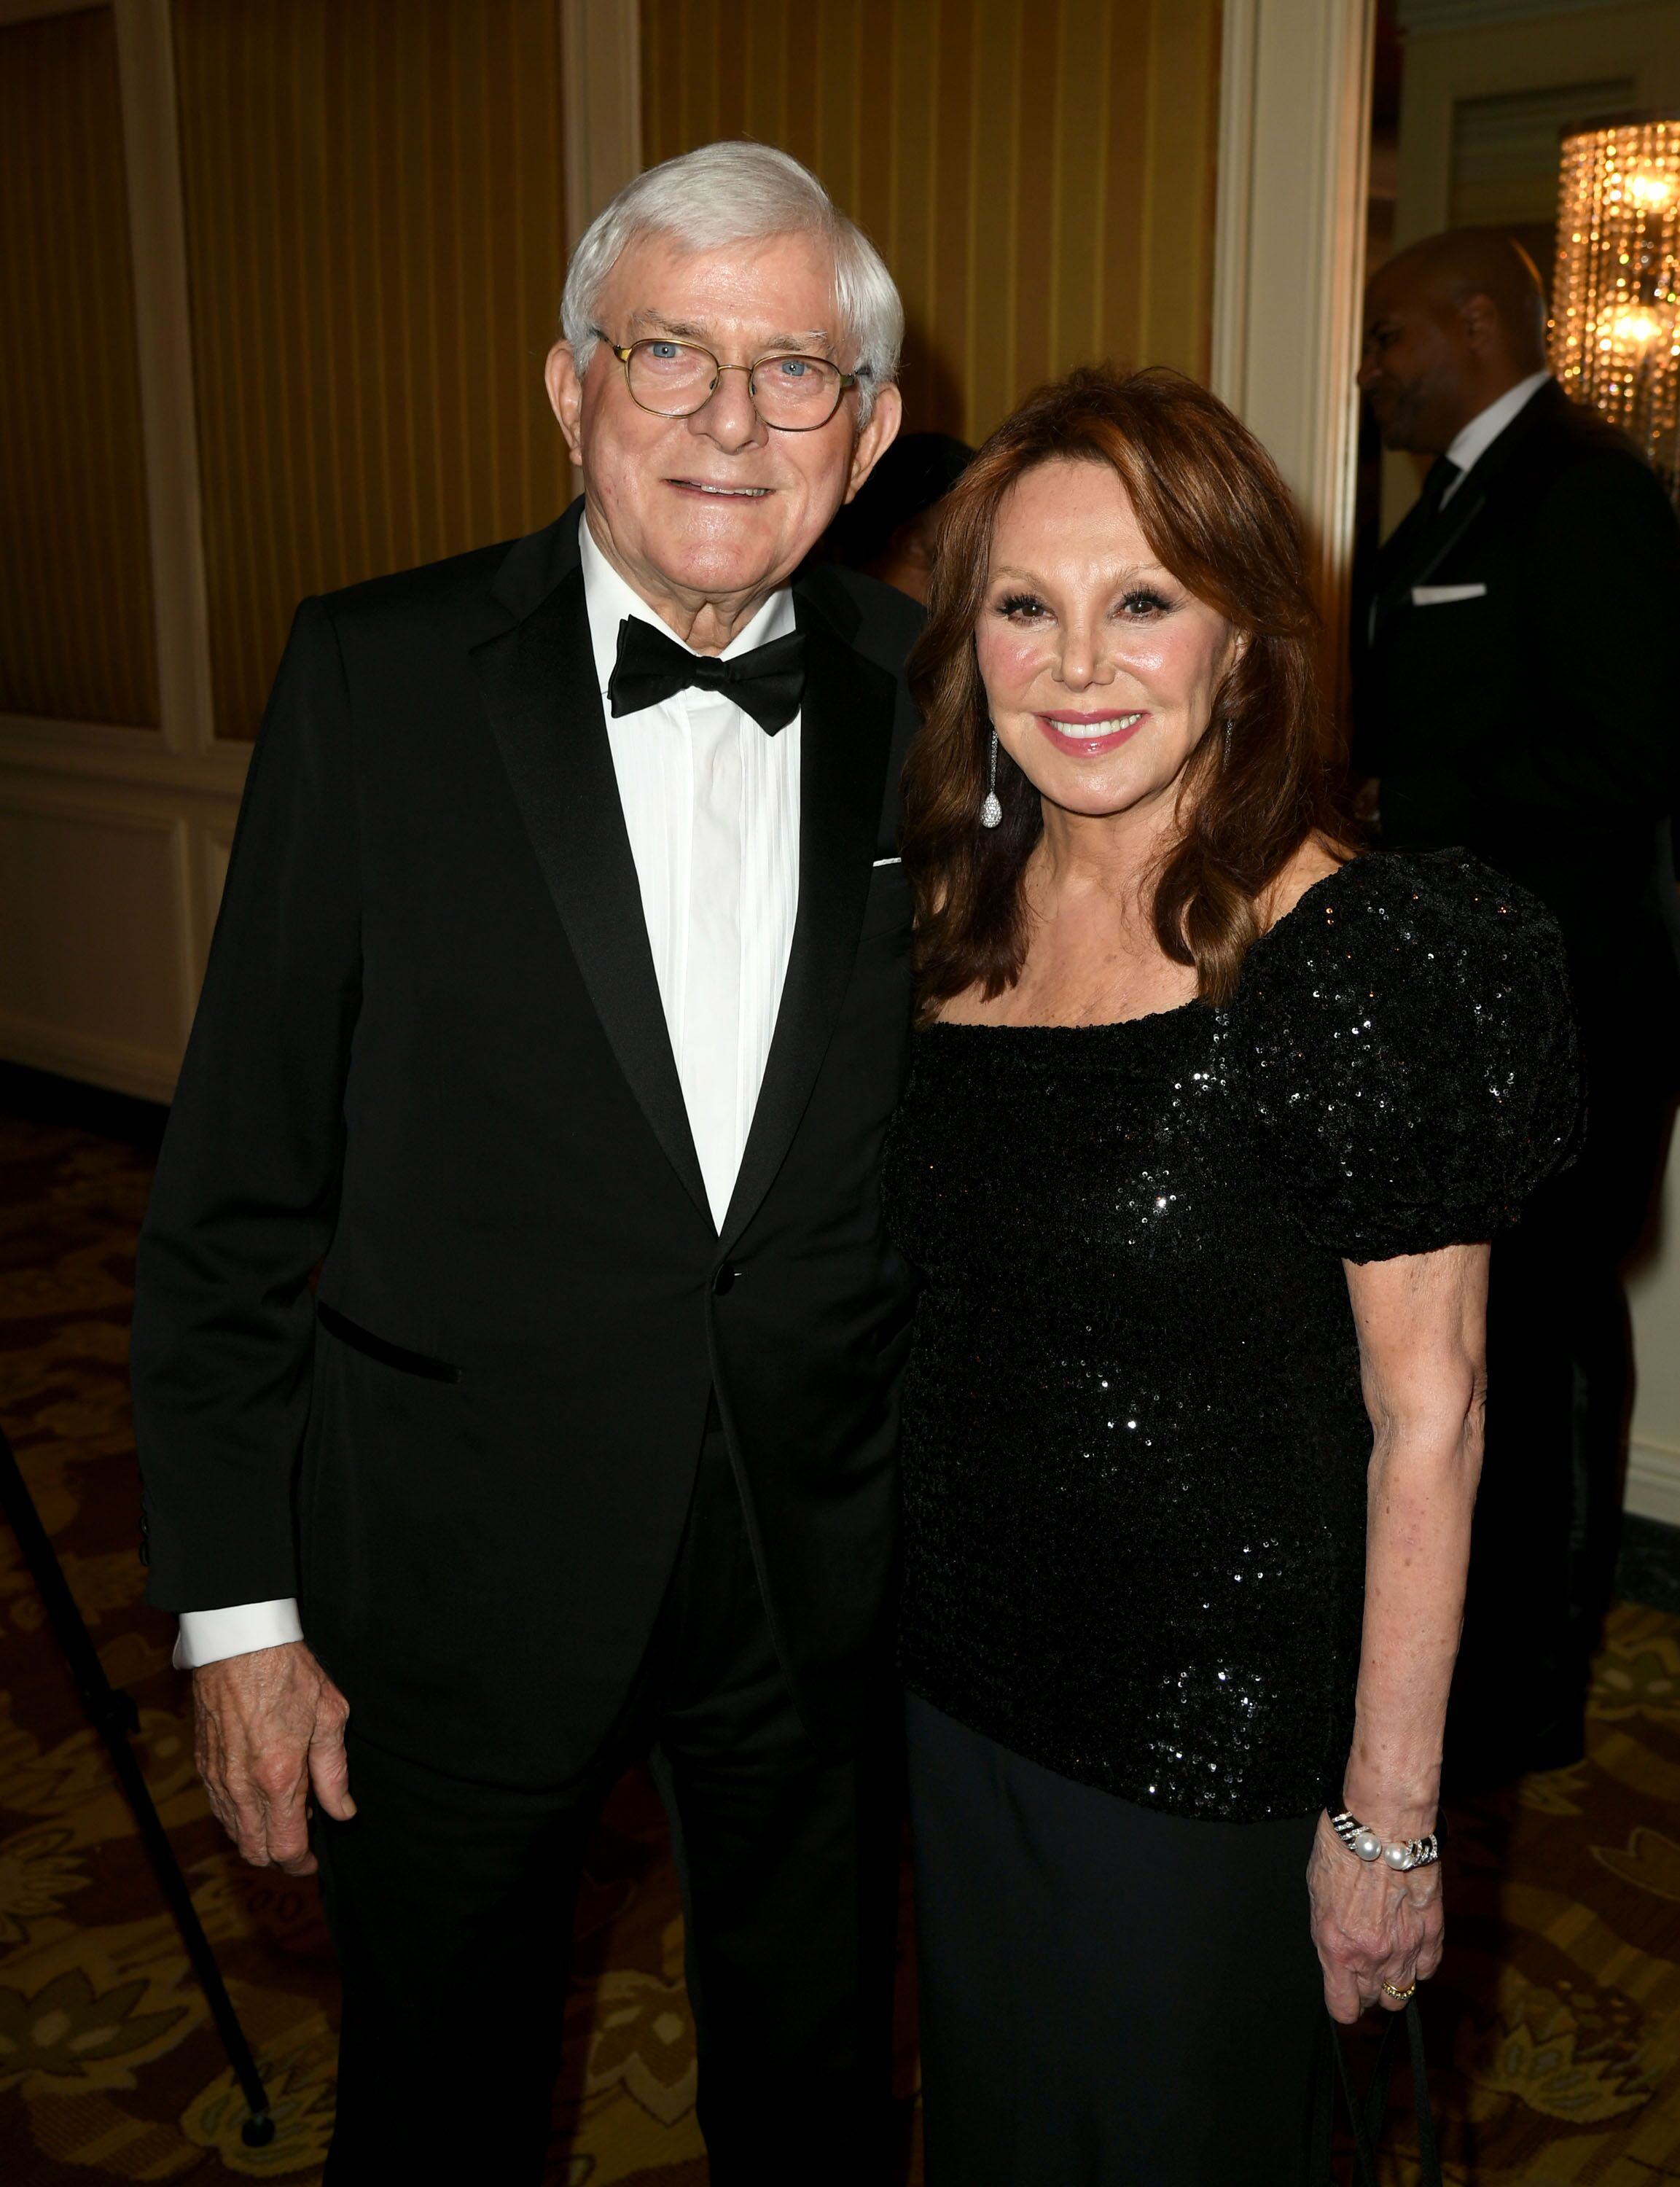 Phil Donahue and Marlo Thomas arrive at the American Icon Awards. | Source: Getty Images